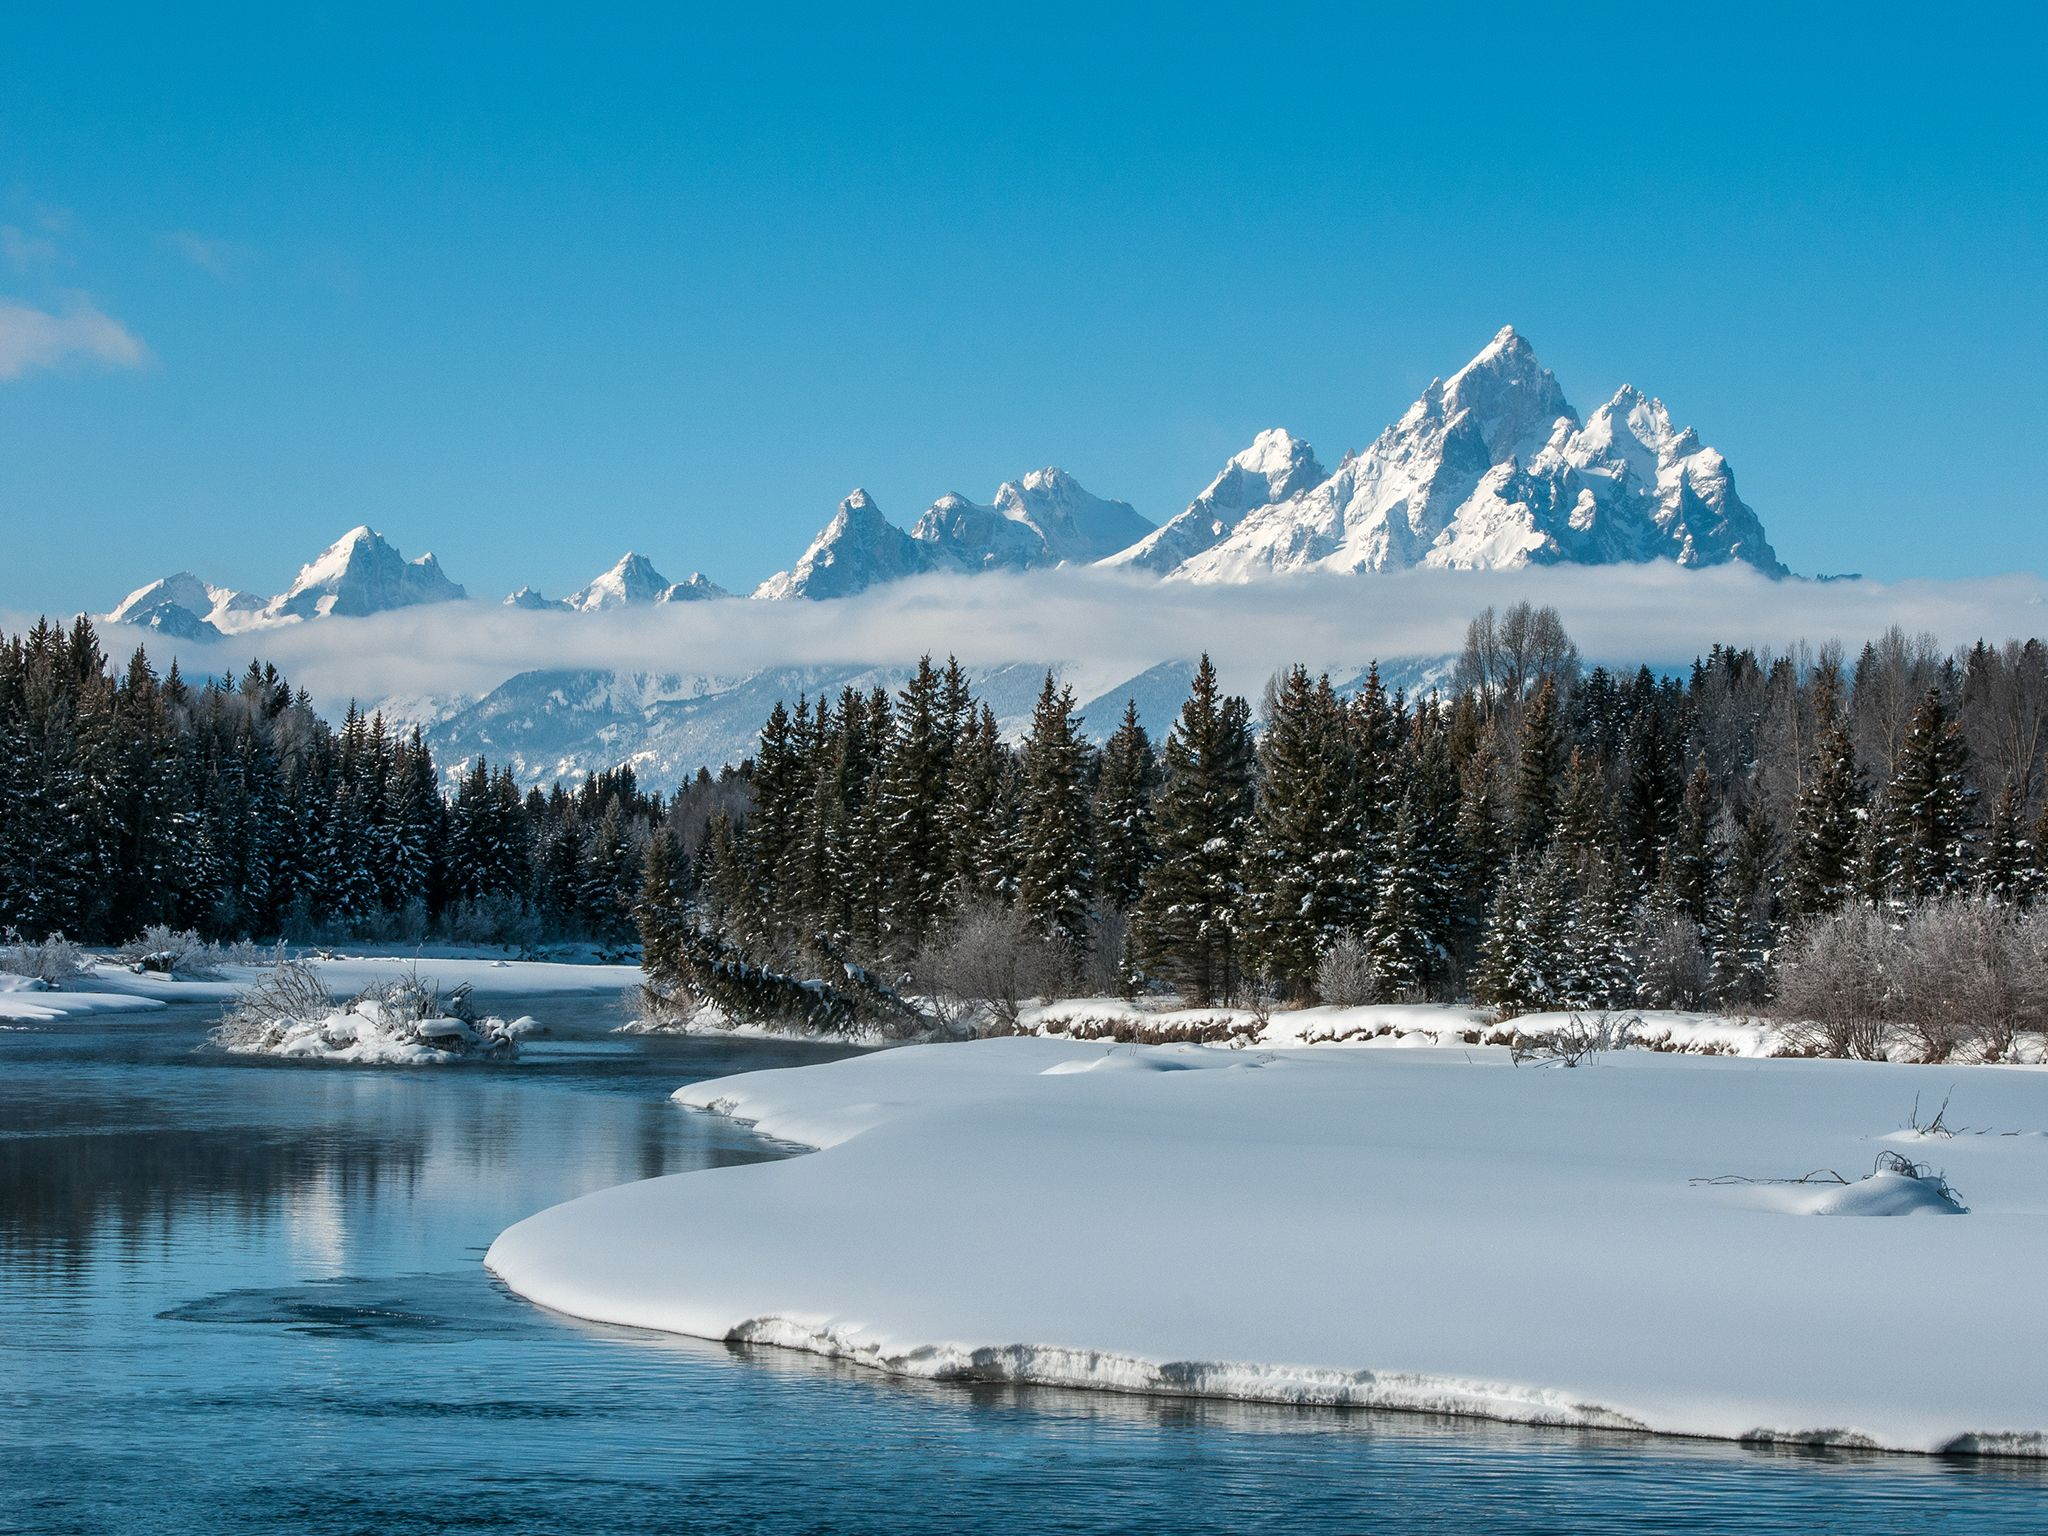 Grand Teton National Park, Wyo.:The Snake River meanders in front of the Teton Mountains mid... [Photo of the day - آوریل 2015]